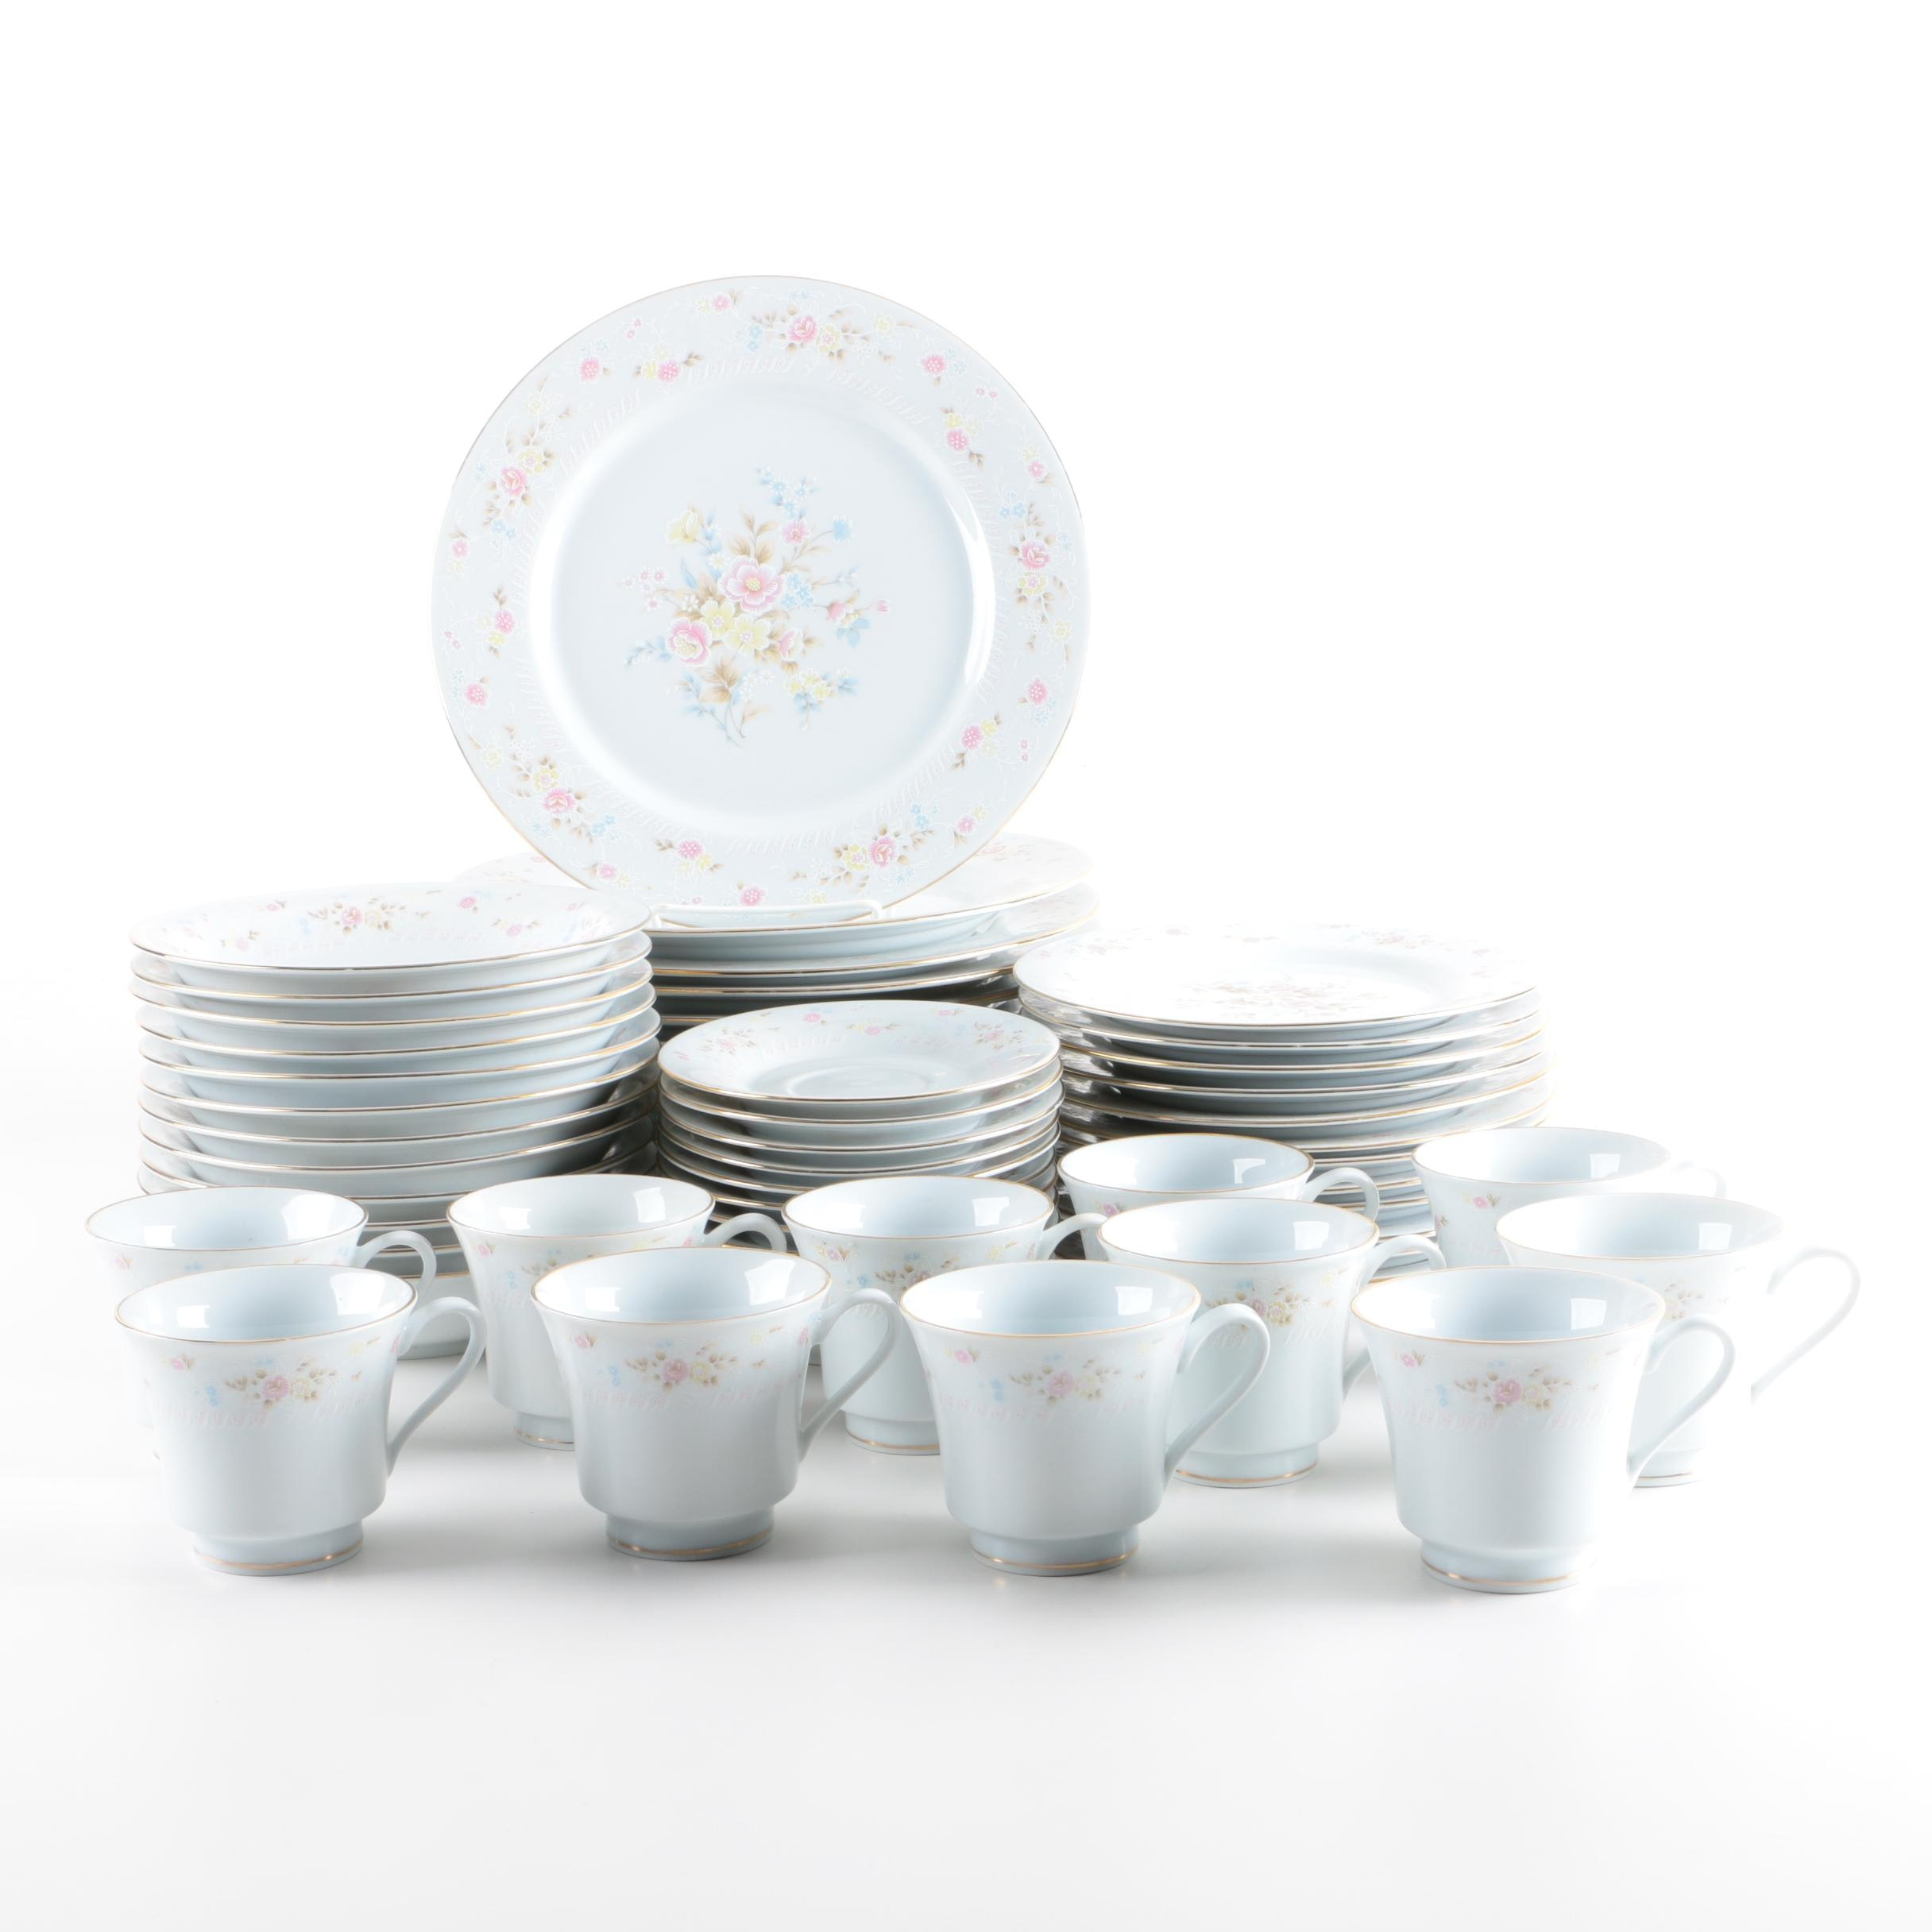 Jamestown China Floral Porcelain Tableware